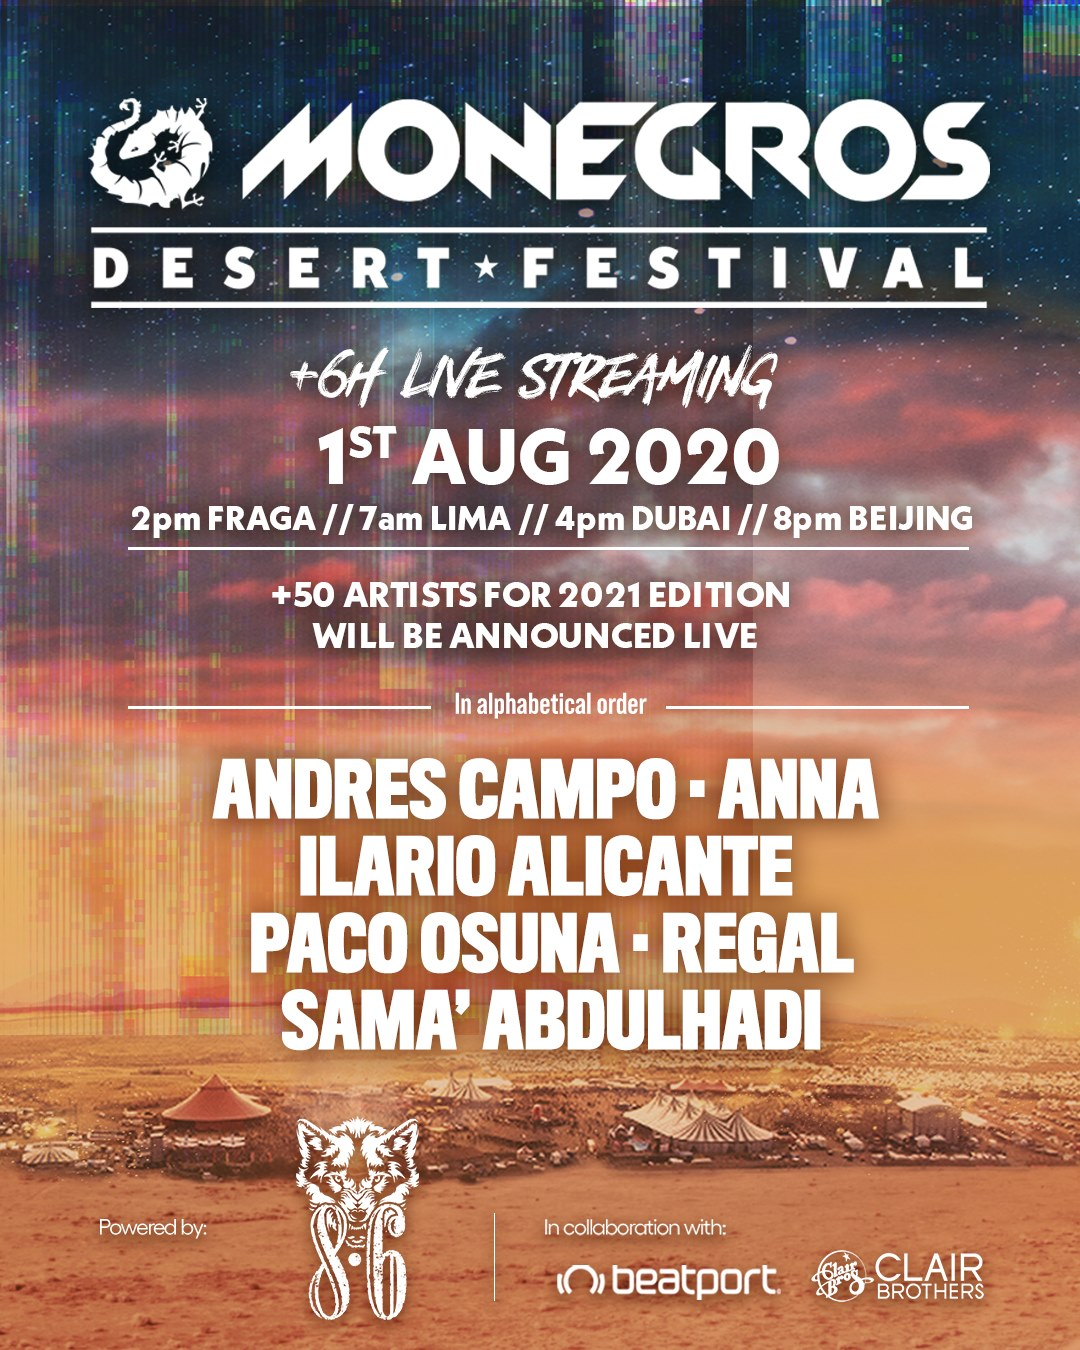 Monegros Festival will be virtual this year